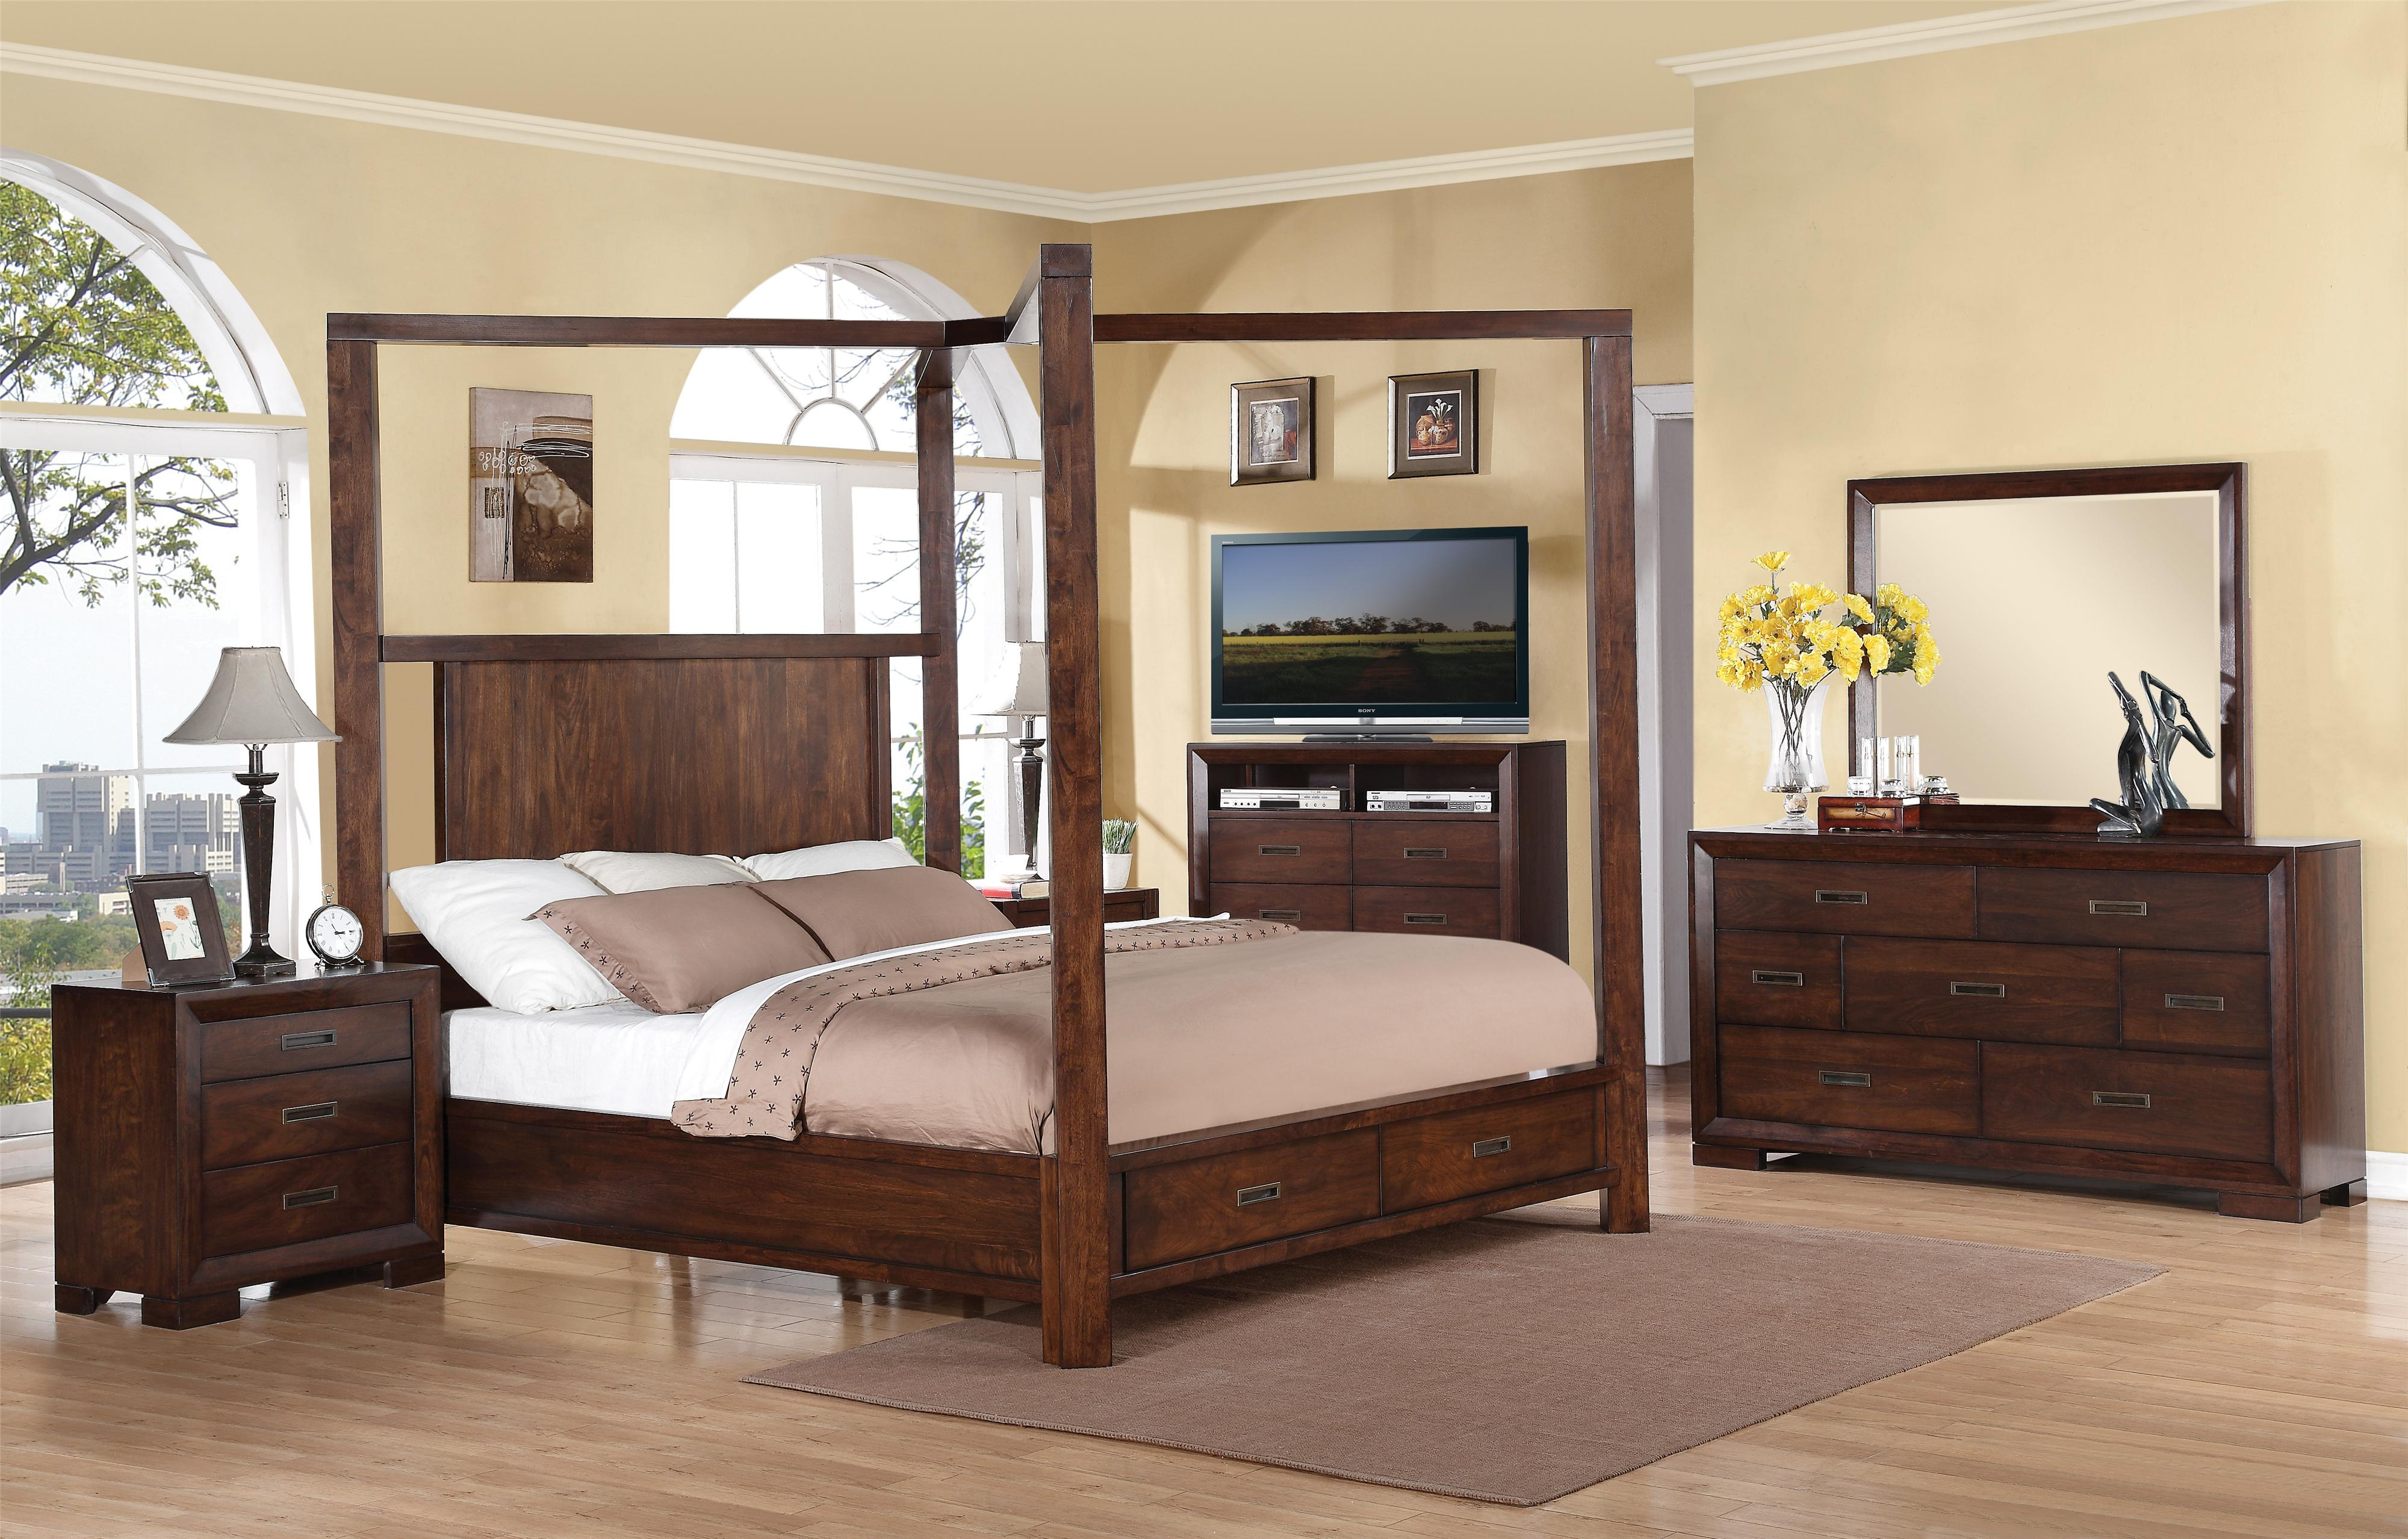 of riva king modus set captains sleigh summerhill full tvilum platform stella bedroom meadow furniture nevis bed riverside twin oak size wooden nightstand storage collection